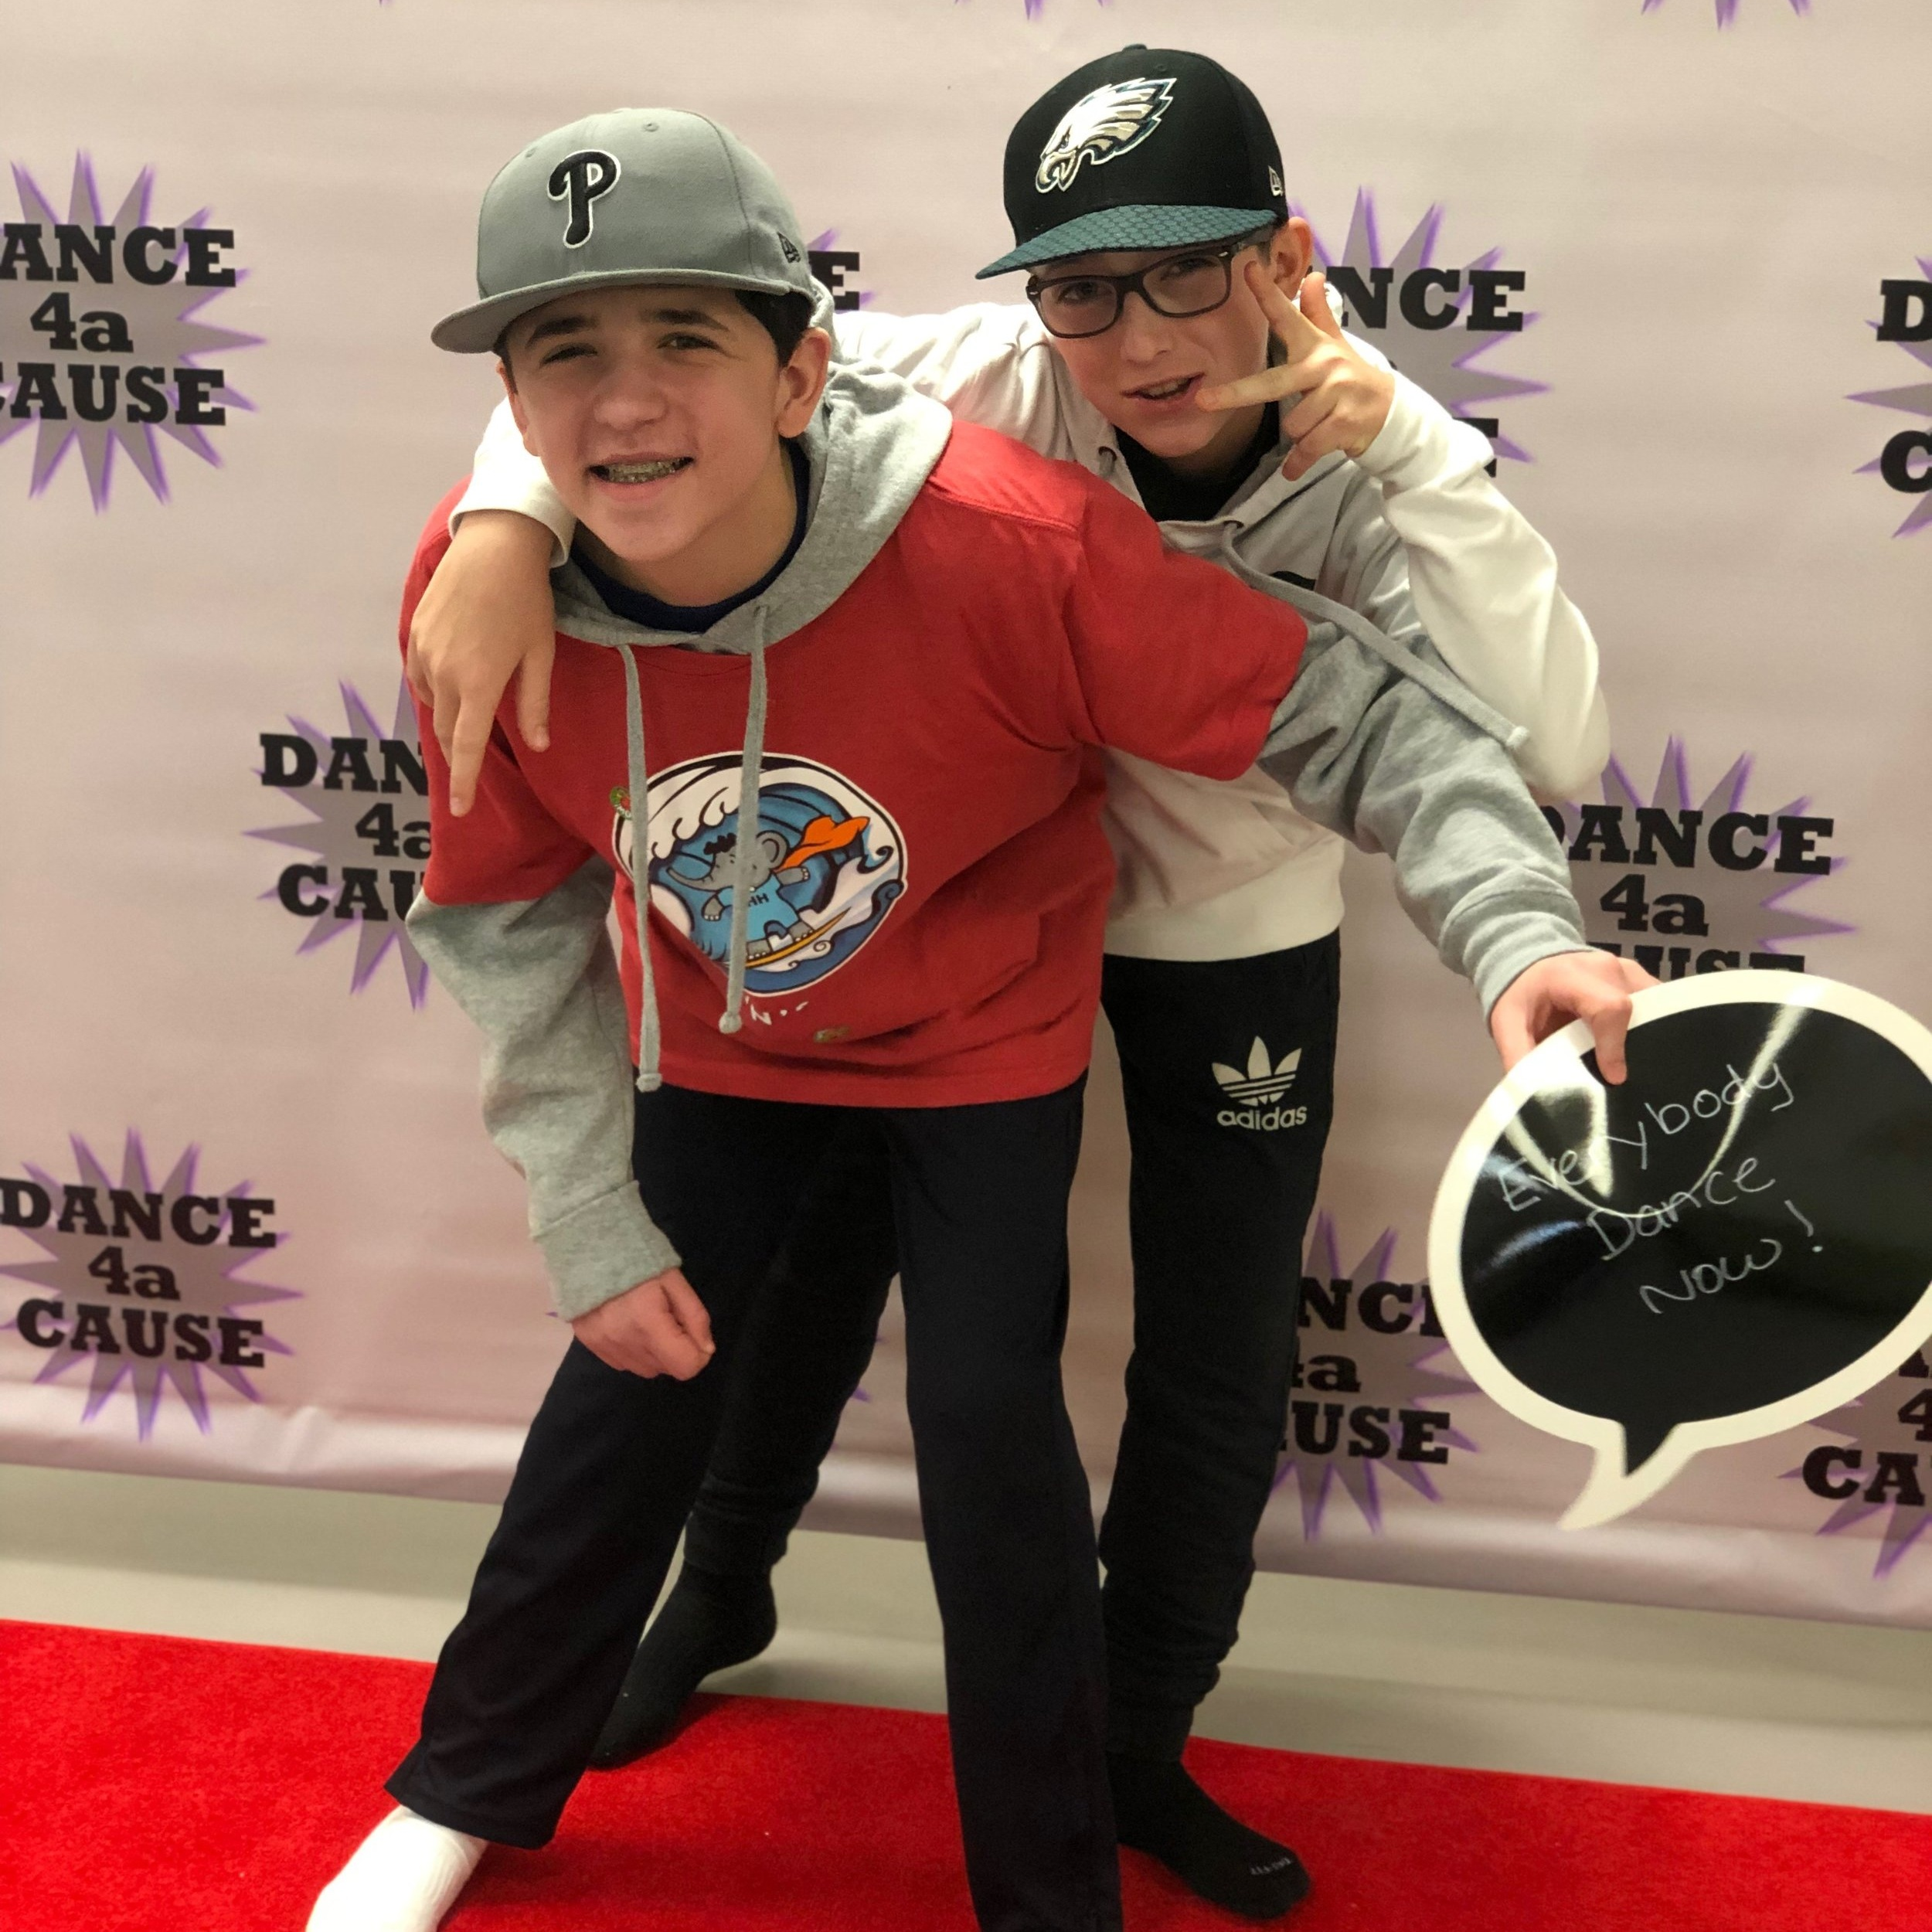 Chase and Sam at a Holton's Heroes dance event for special needs kids.